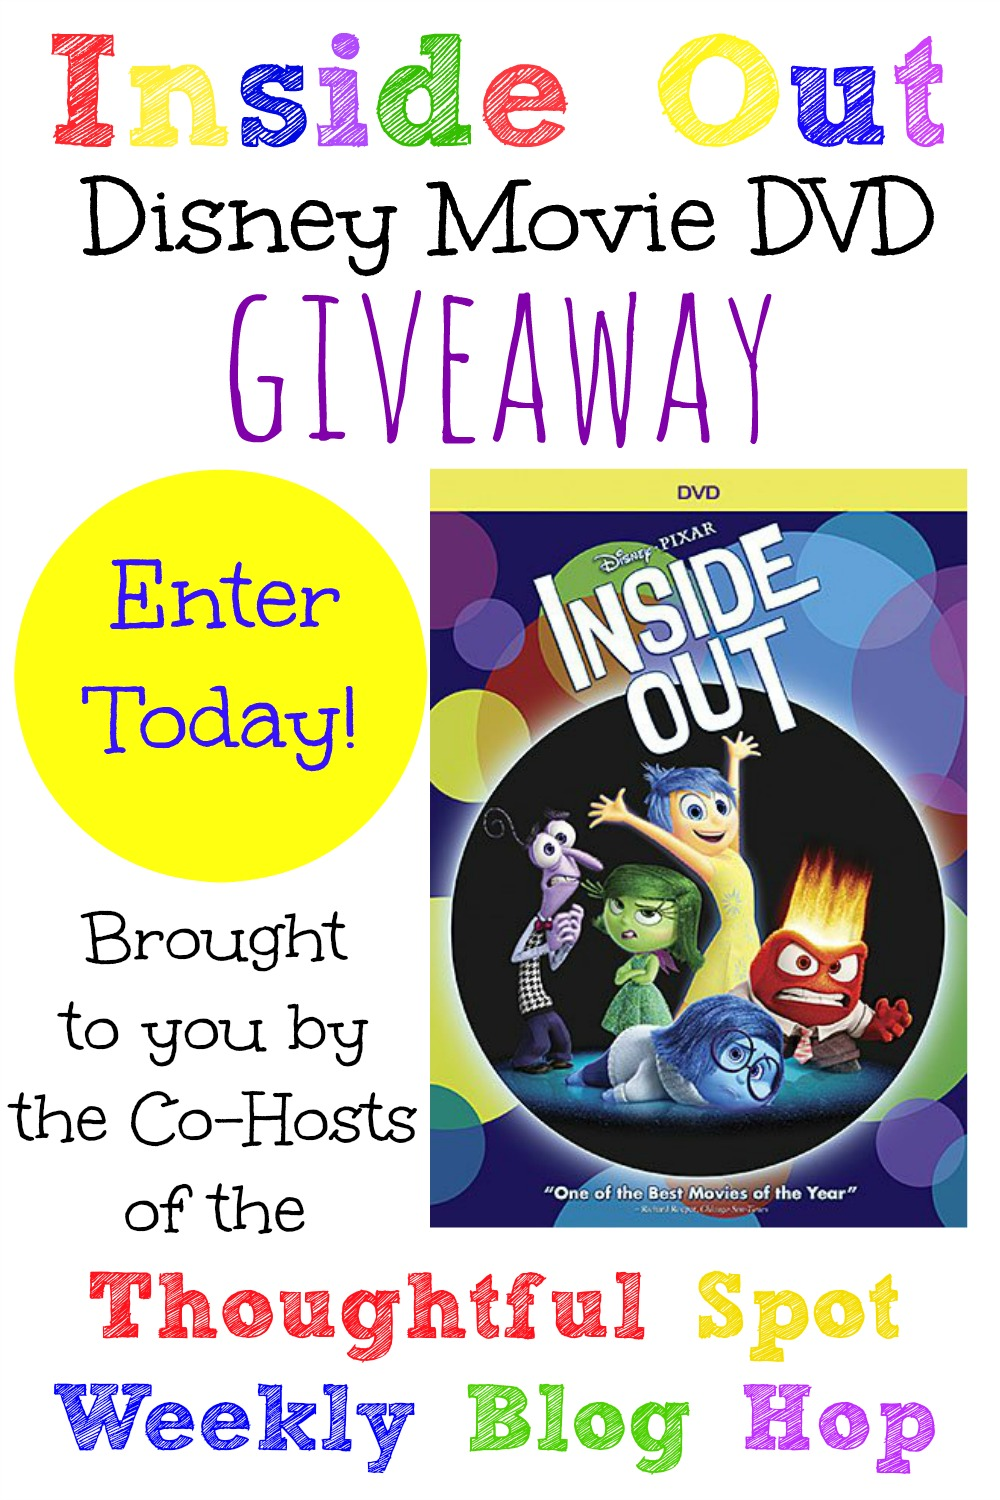 Thoughtful Spot Weekly Blog Hop Inside Out Disney Movie Giveaway